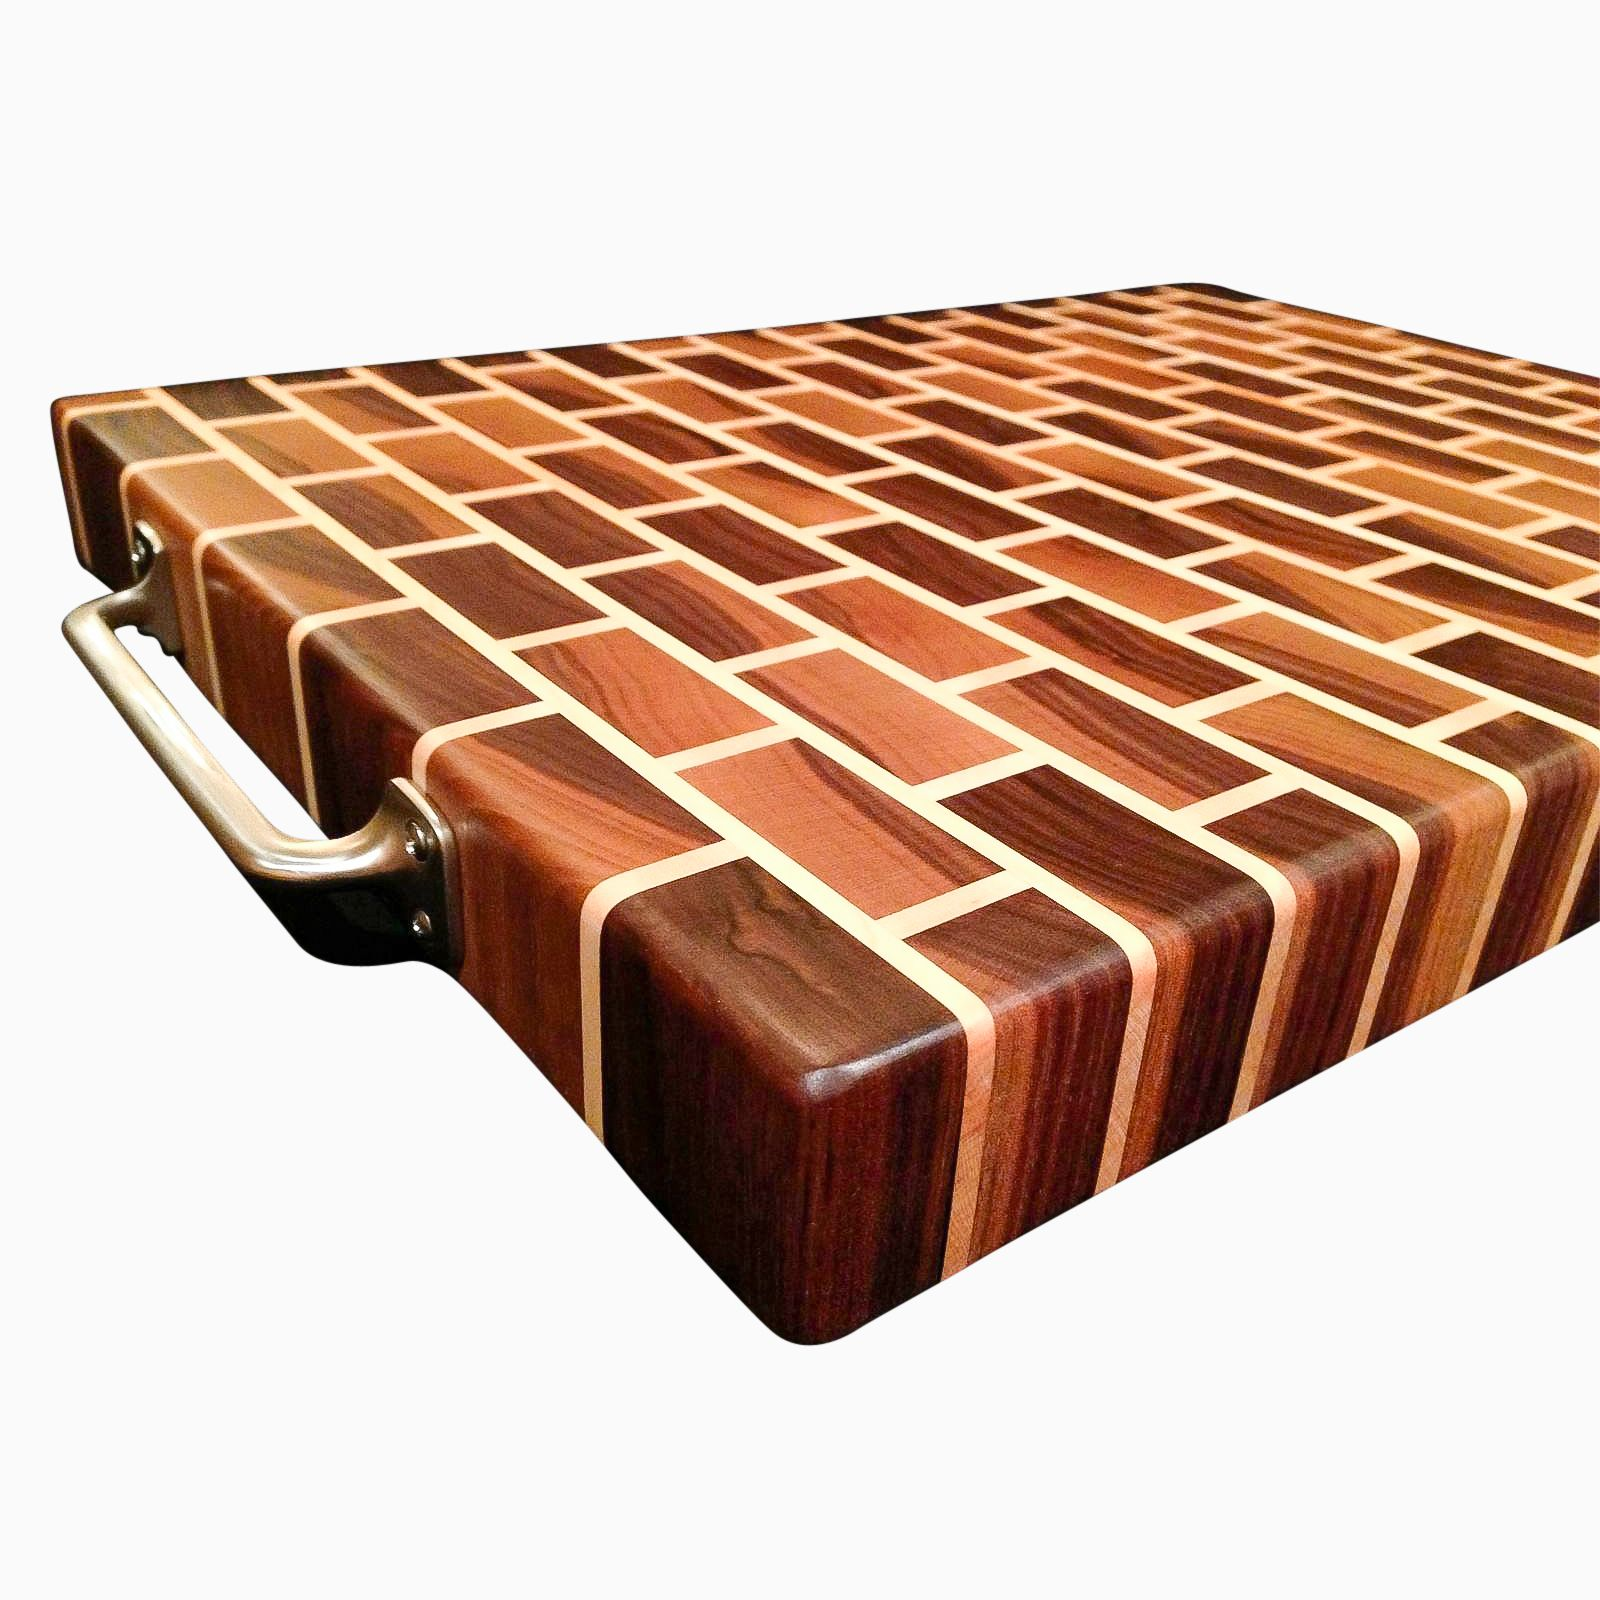 Buy A Hand Crafted Black Walnut And Rock Maple End Grain Cutting Board Made To Order From